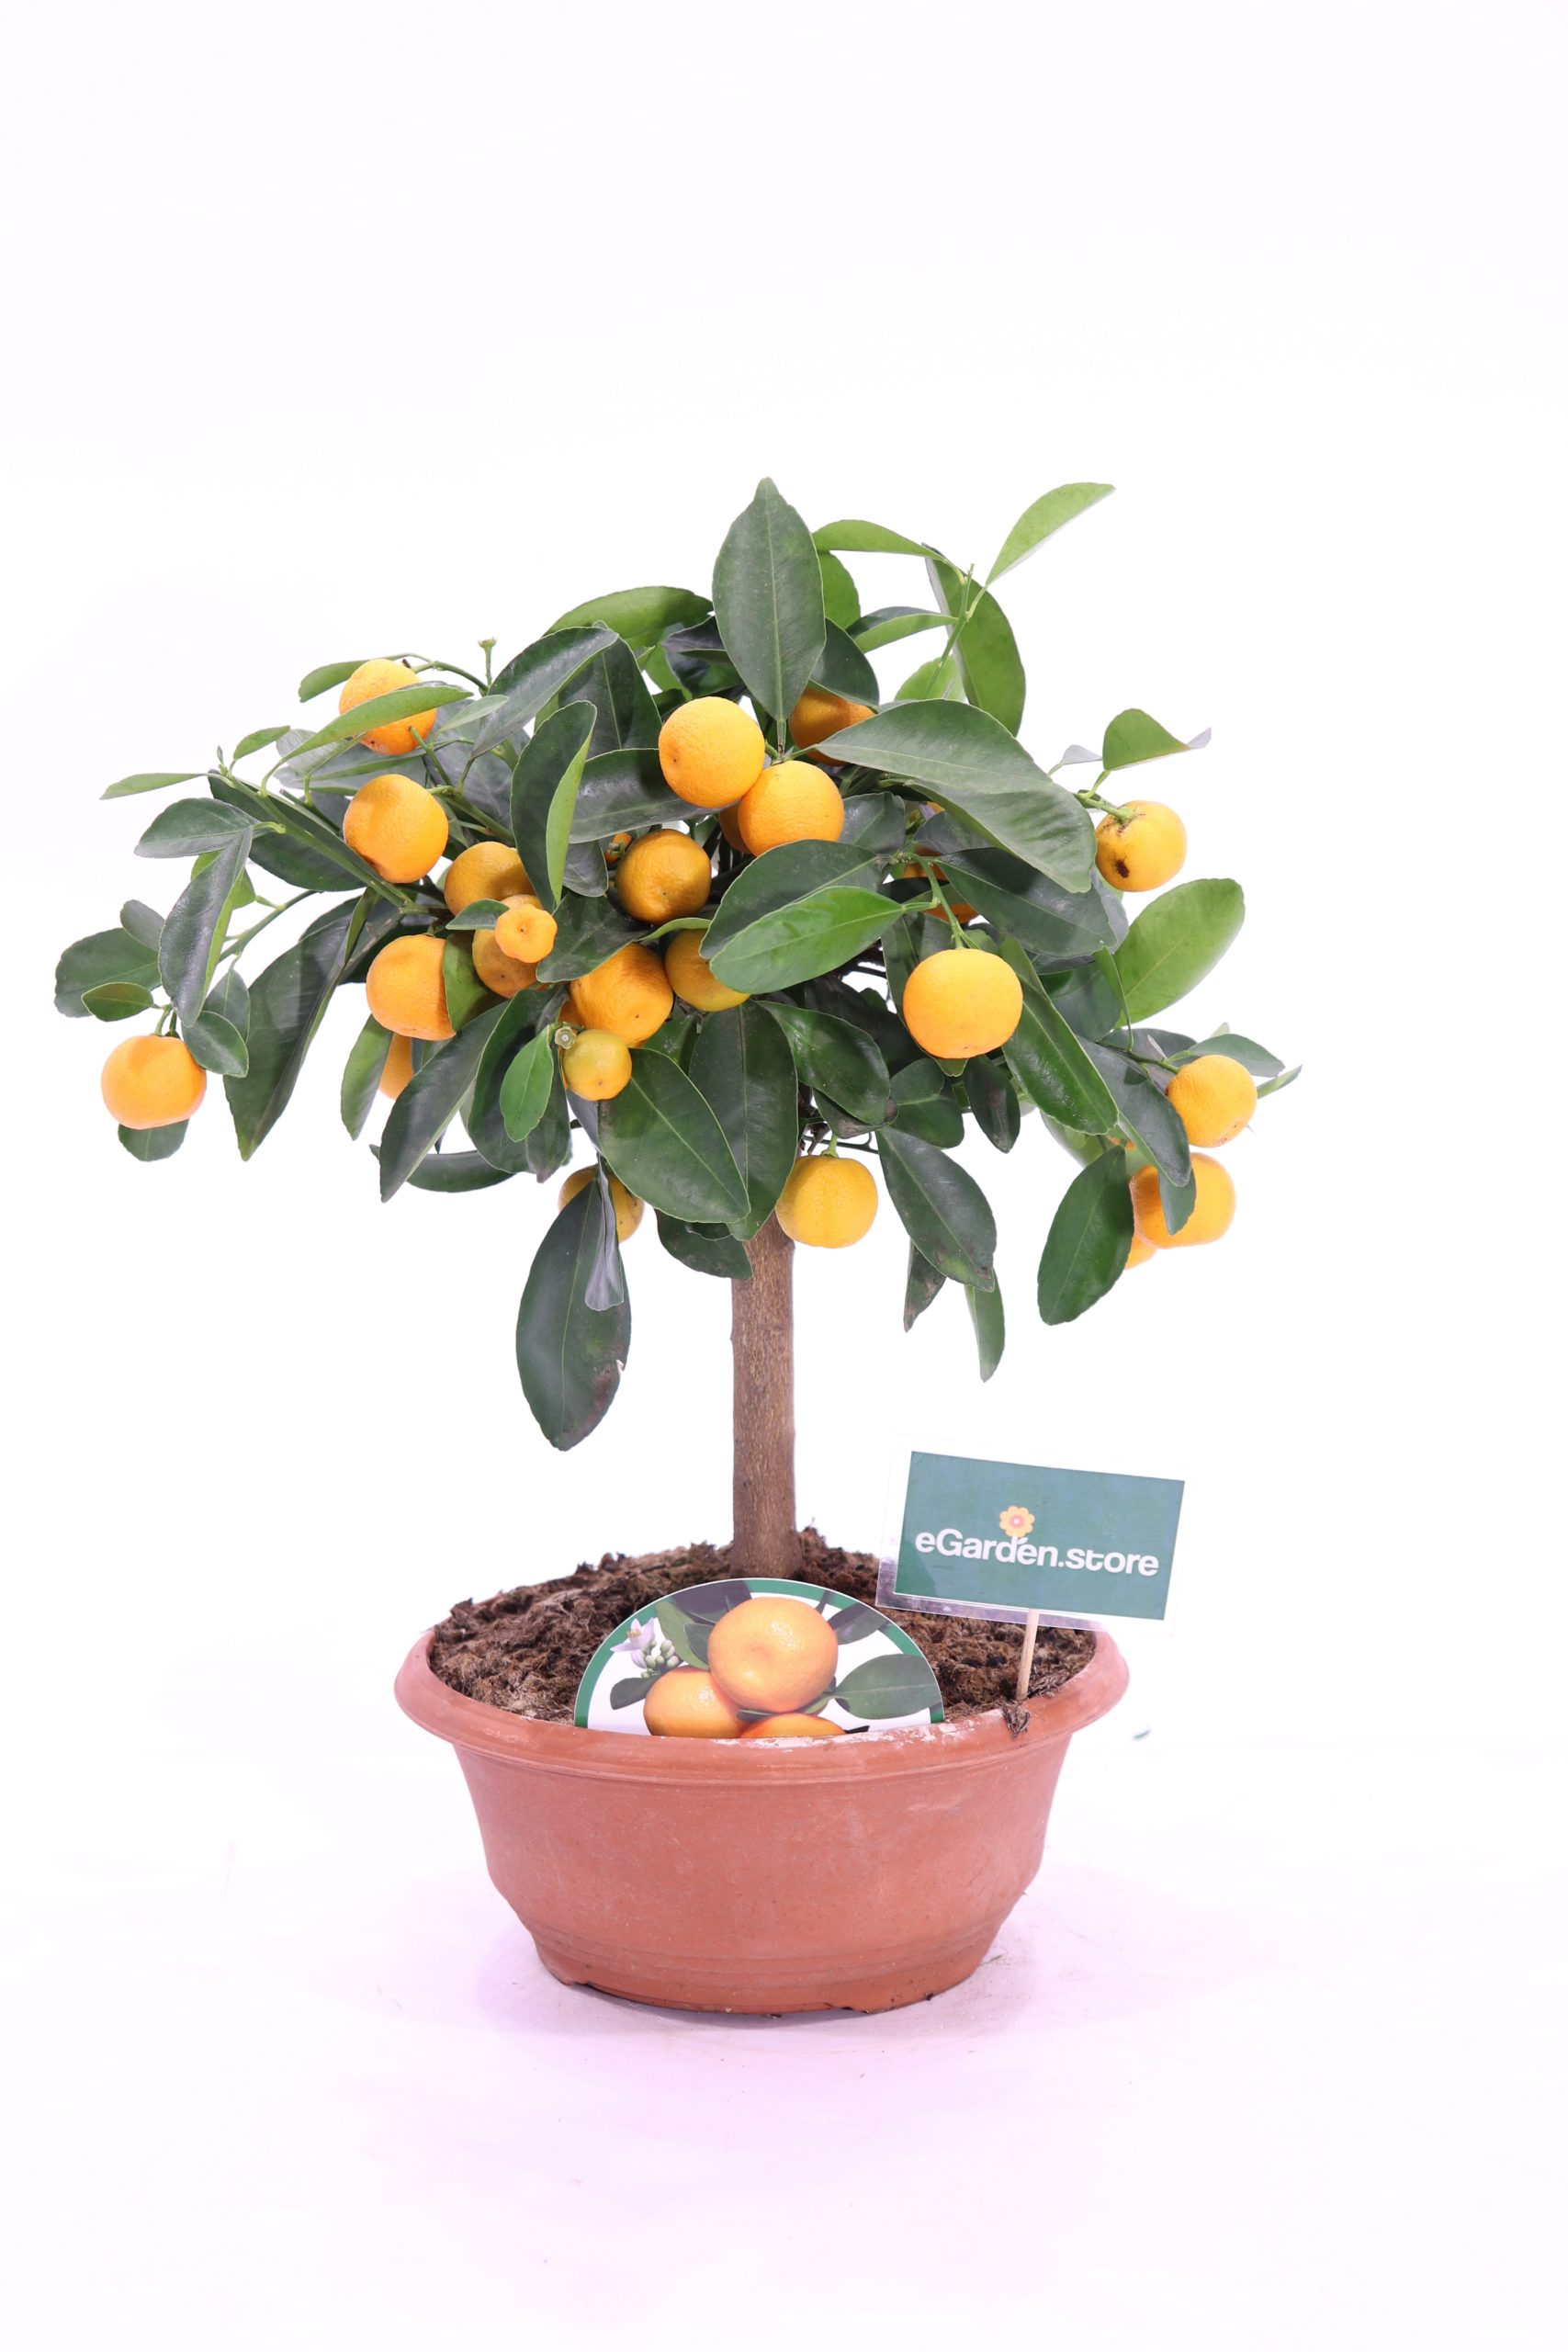 Bonsai Calamondivo - Citrus Madurensis